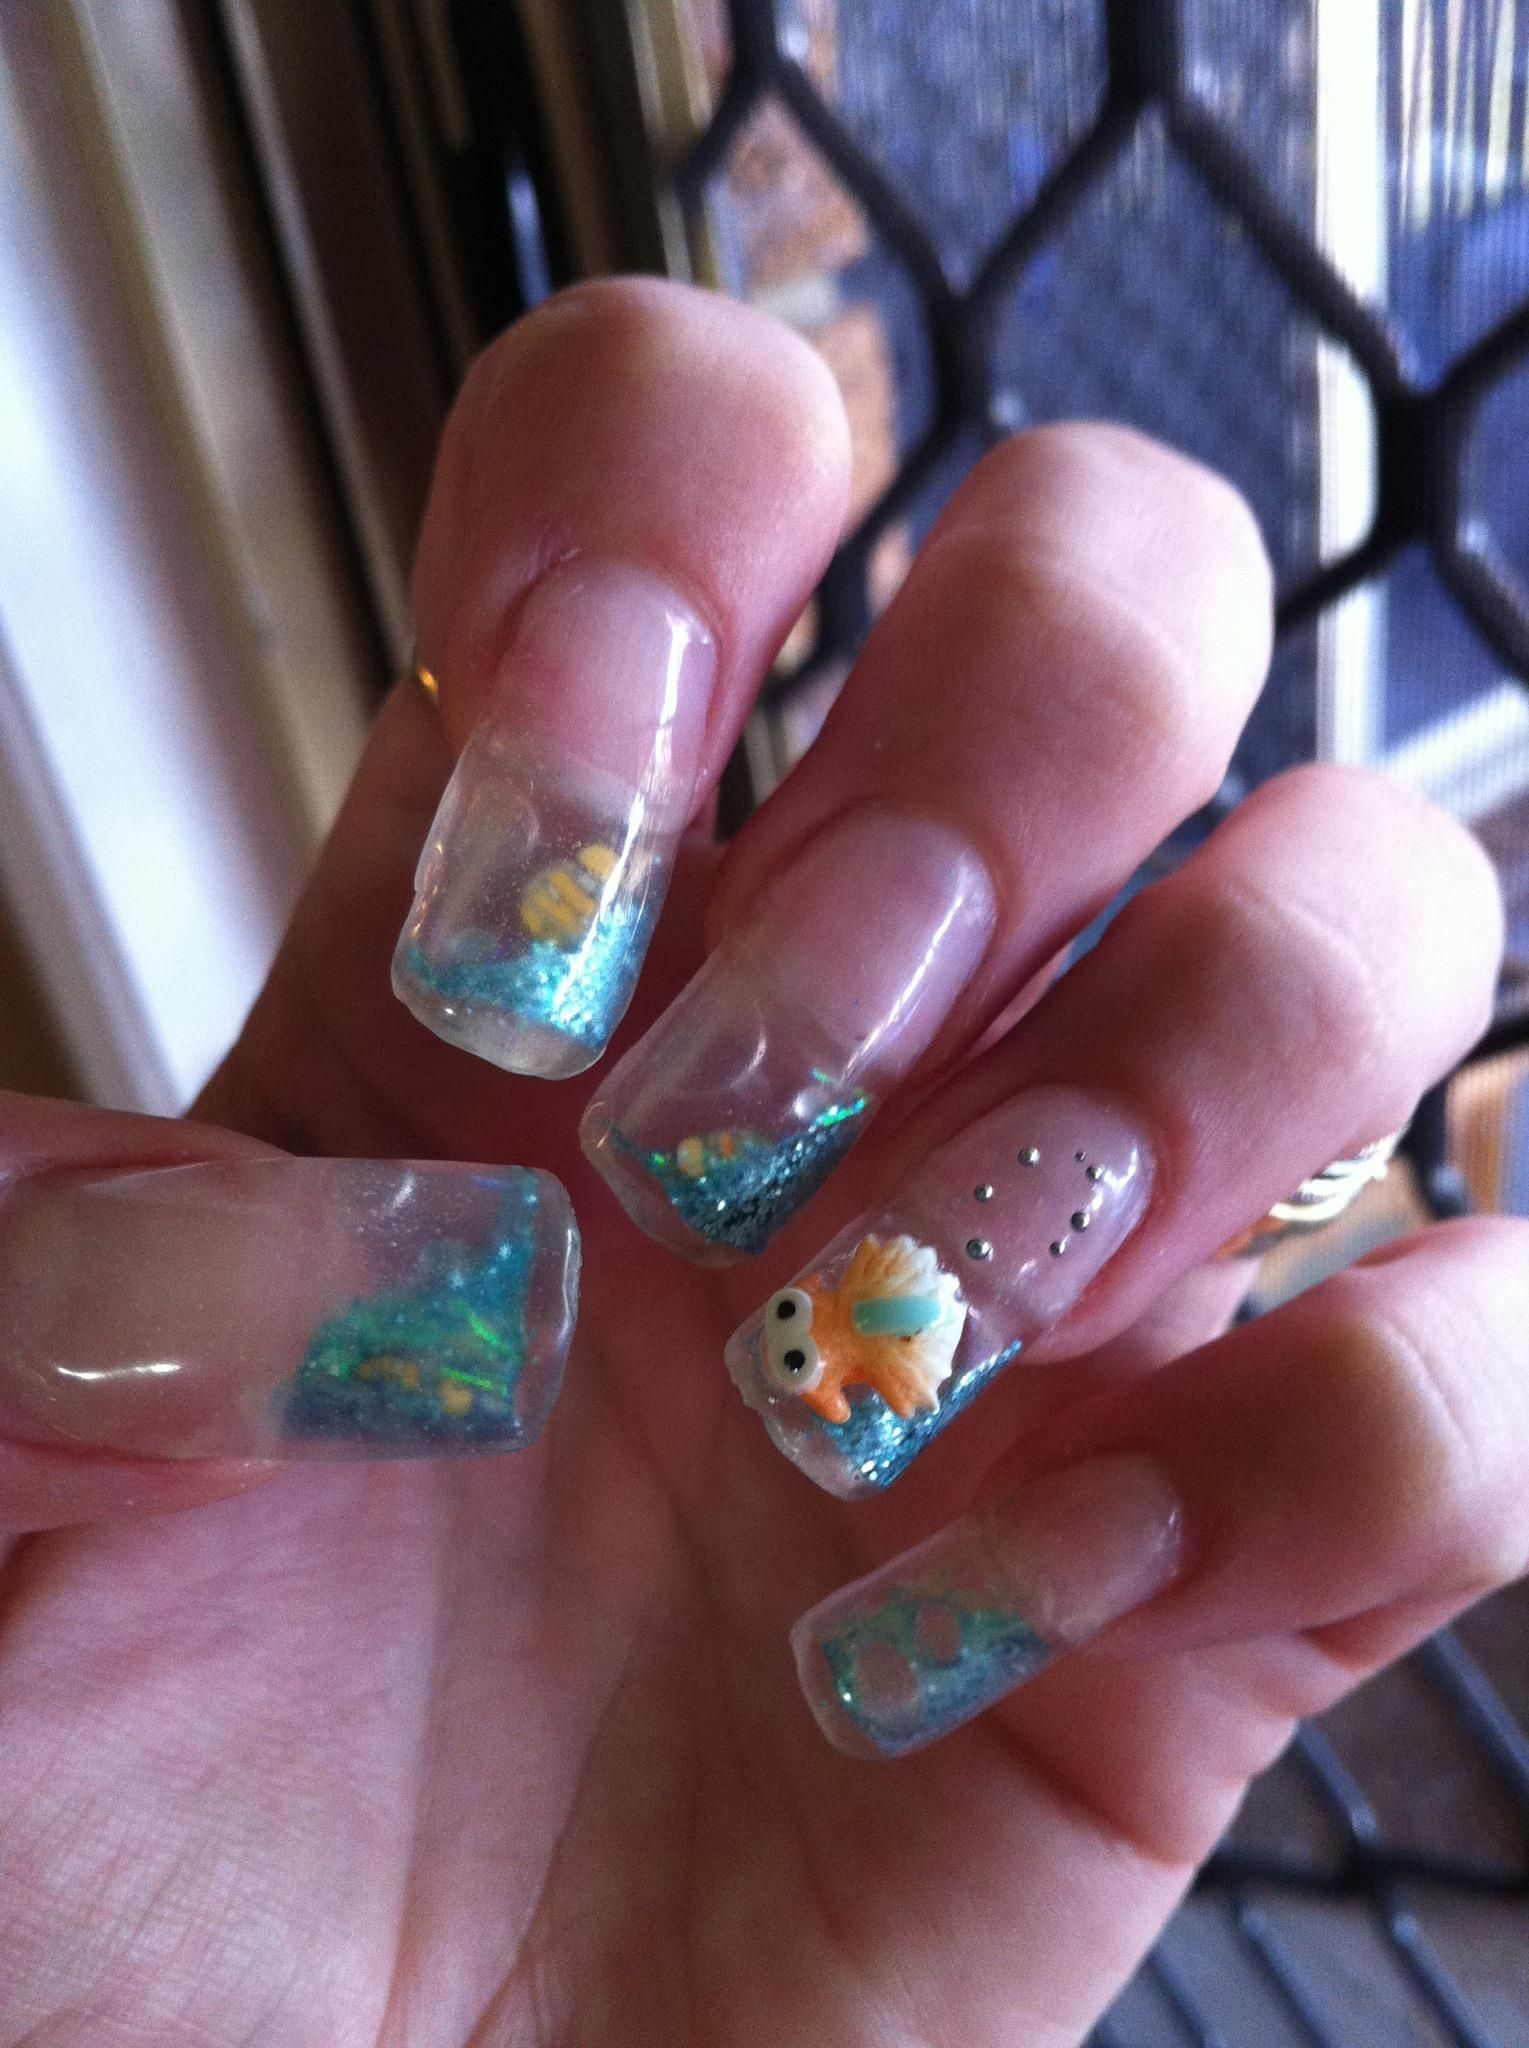 Water Filled Nail Tips With Little Nemos